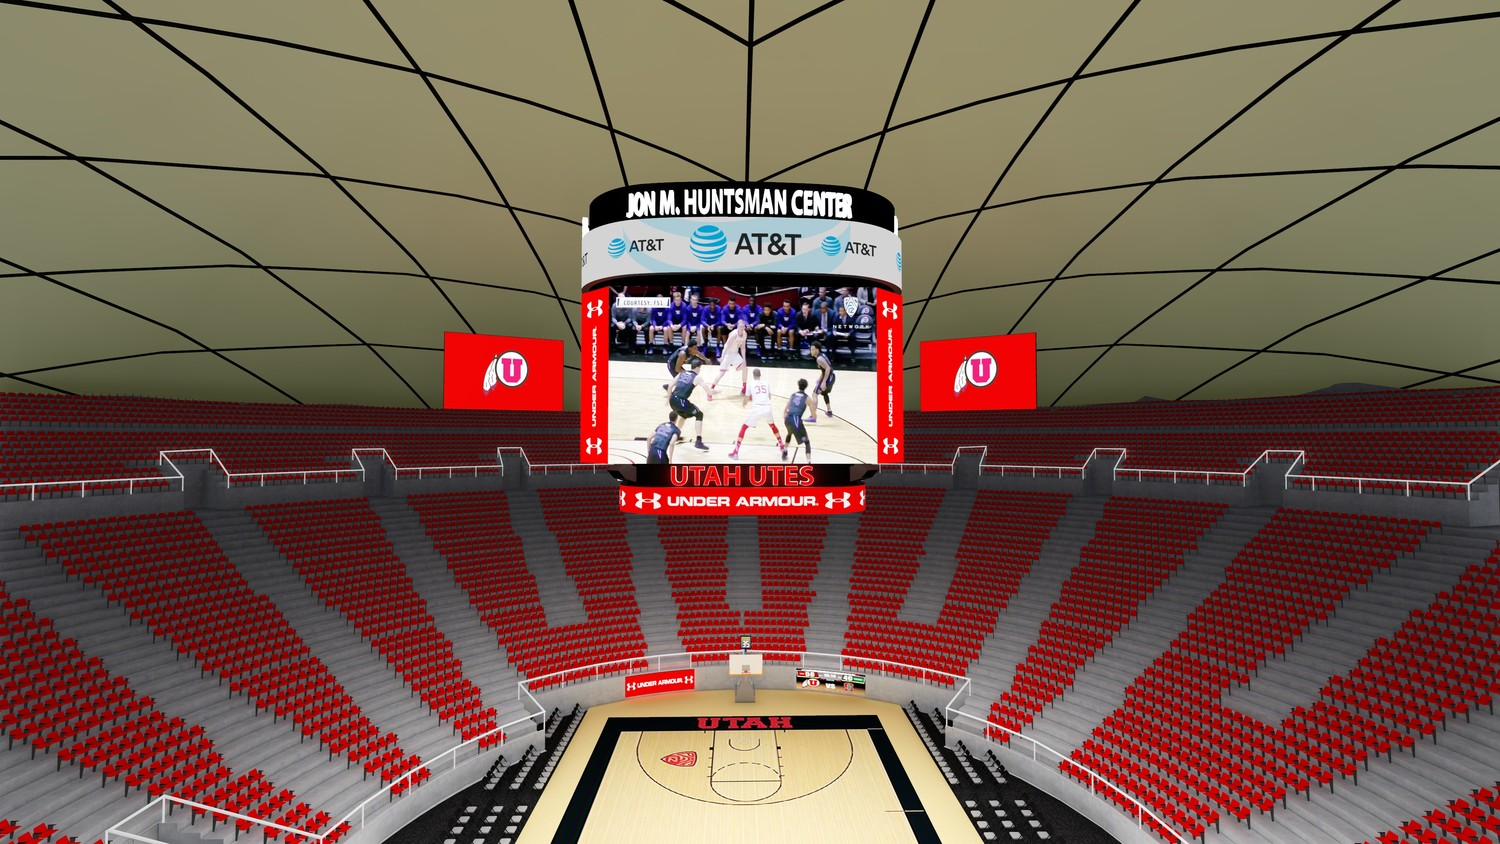 North Ridge Construction, Inc. and ANC partner to renovate University of Utah's Jon M. Huntsman Center